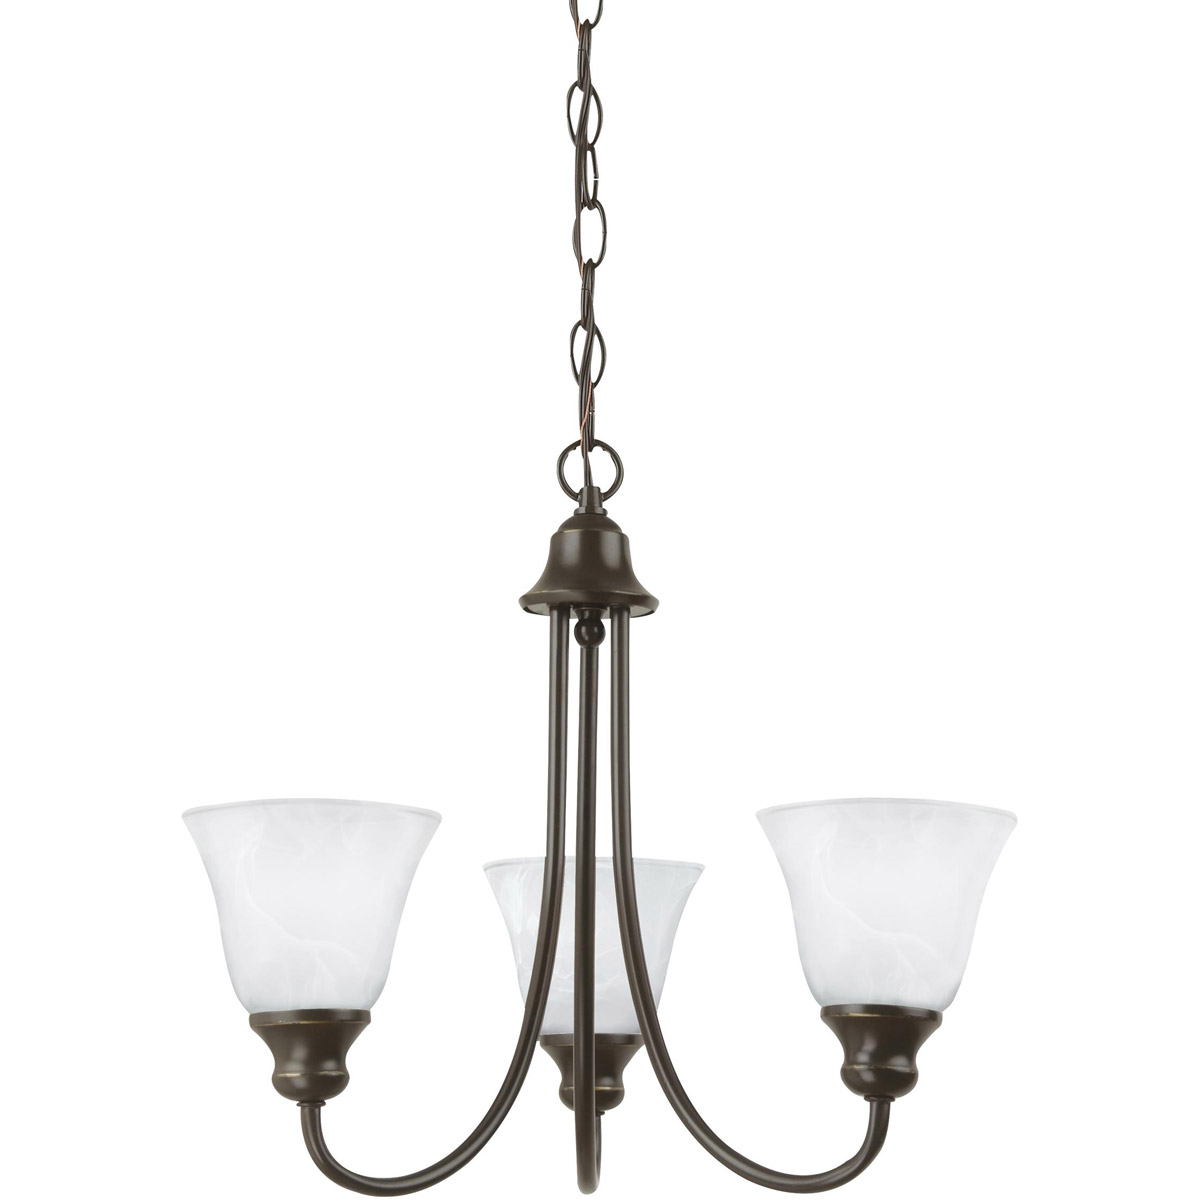 Sea Gull 35939-782 Windgate 3 Light 20 inch Heirloom Bronze Chandelier Ceiling Light in Standard photo